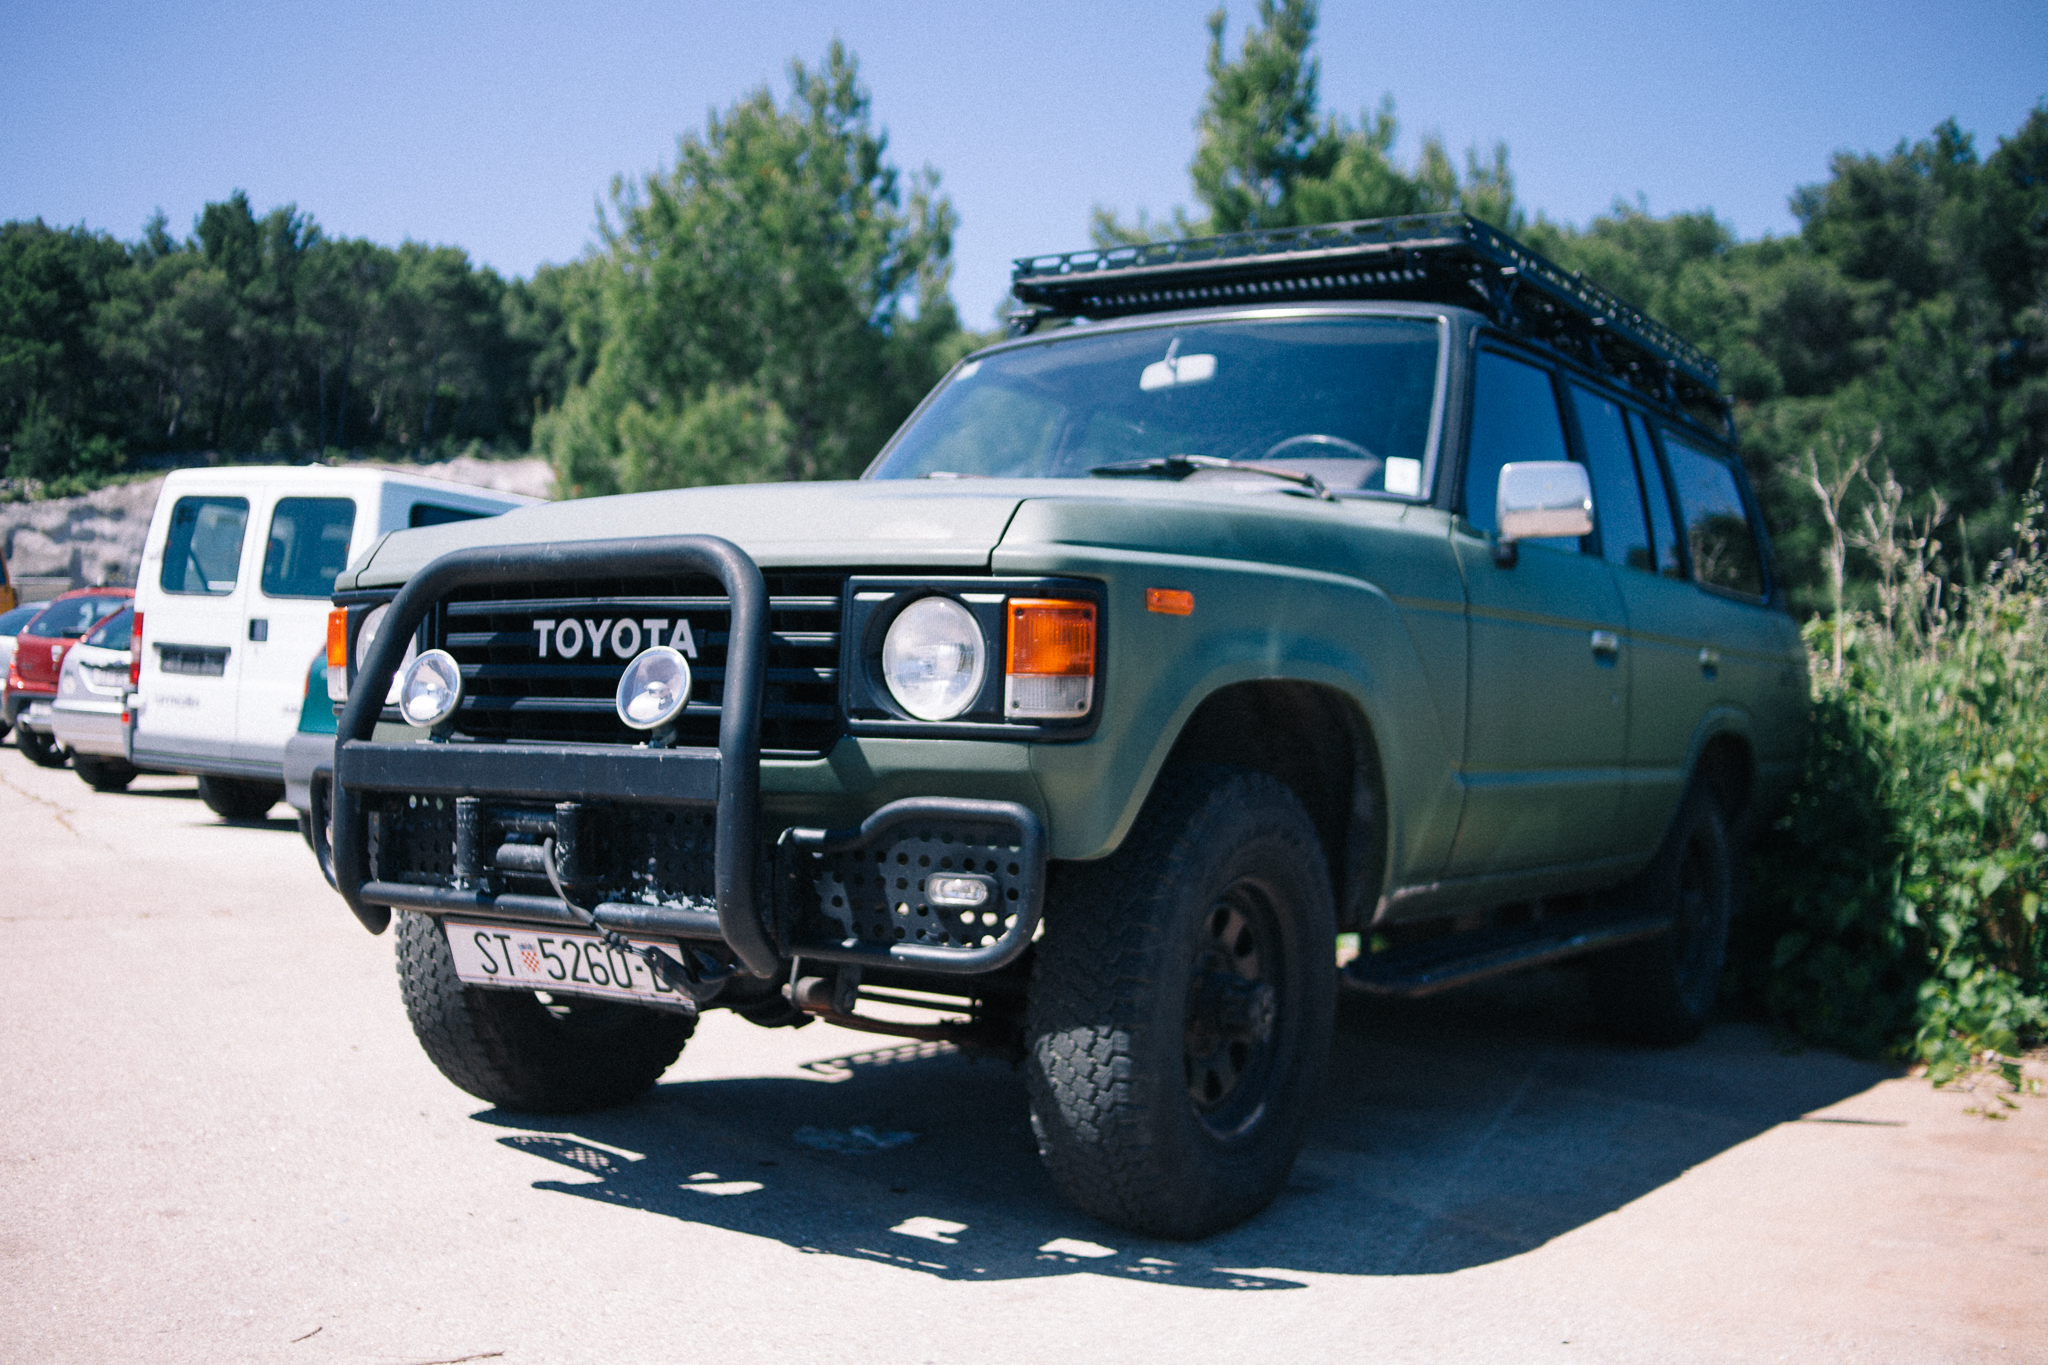 A Toyota Land Cruiser FJ60. I wish there were more classic Toyota 4x4s on the road in Europe!